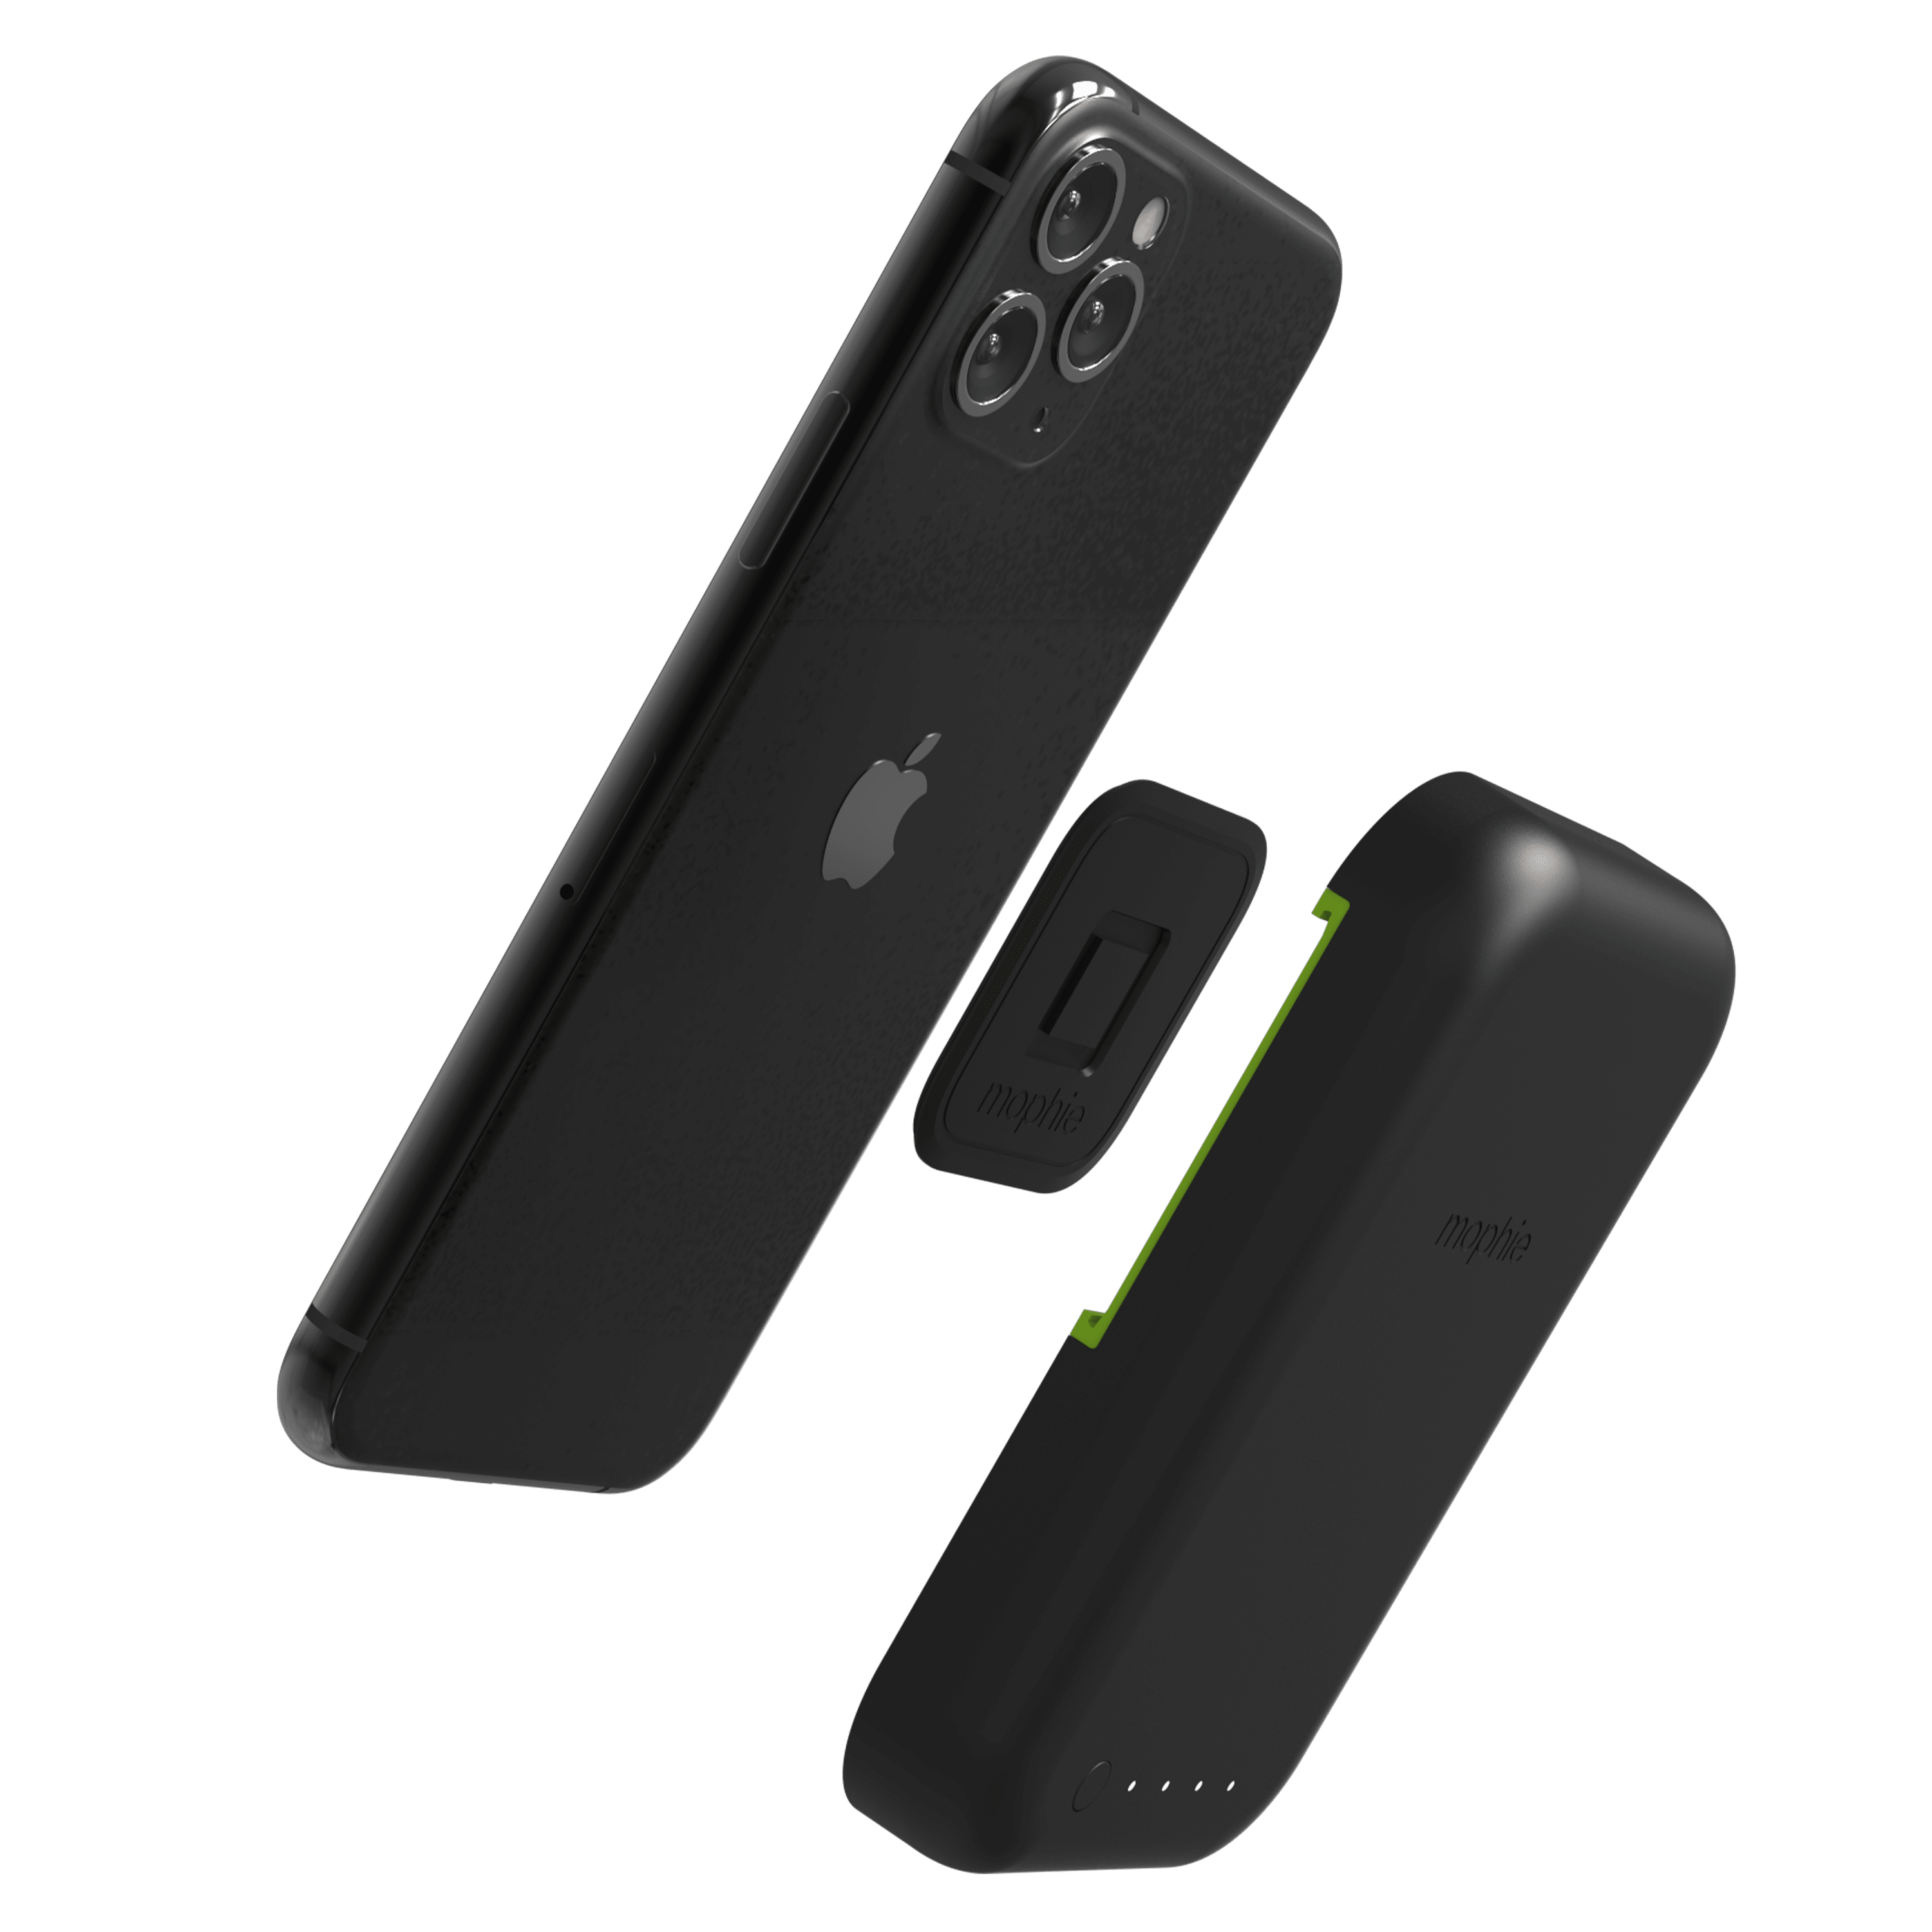 Wholesale cell phone accessory mophie - Juice Pack Connect Wireless Power Bank 5,000 mAh -